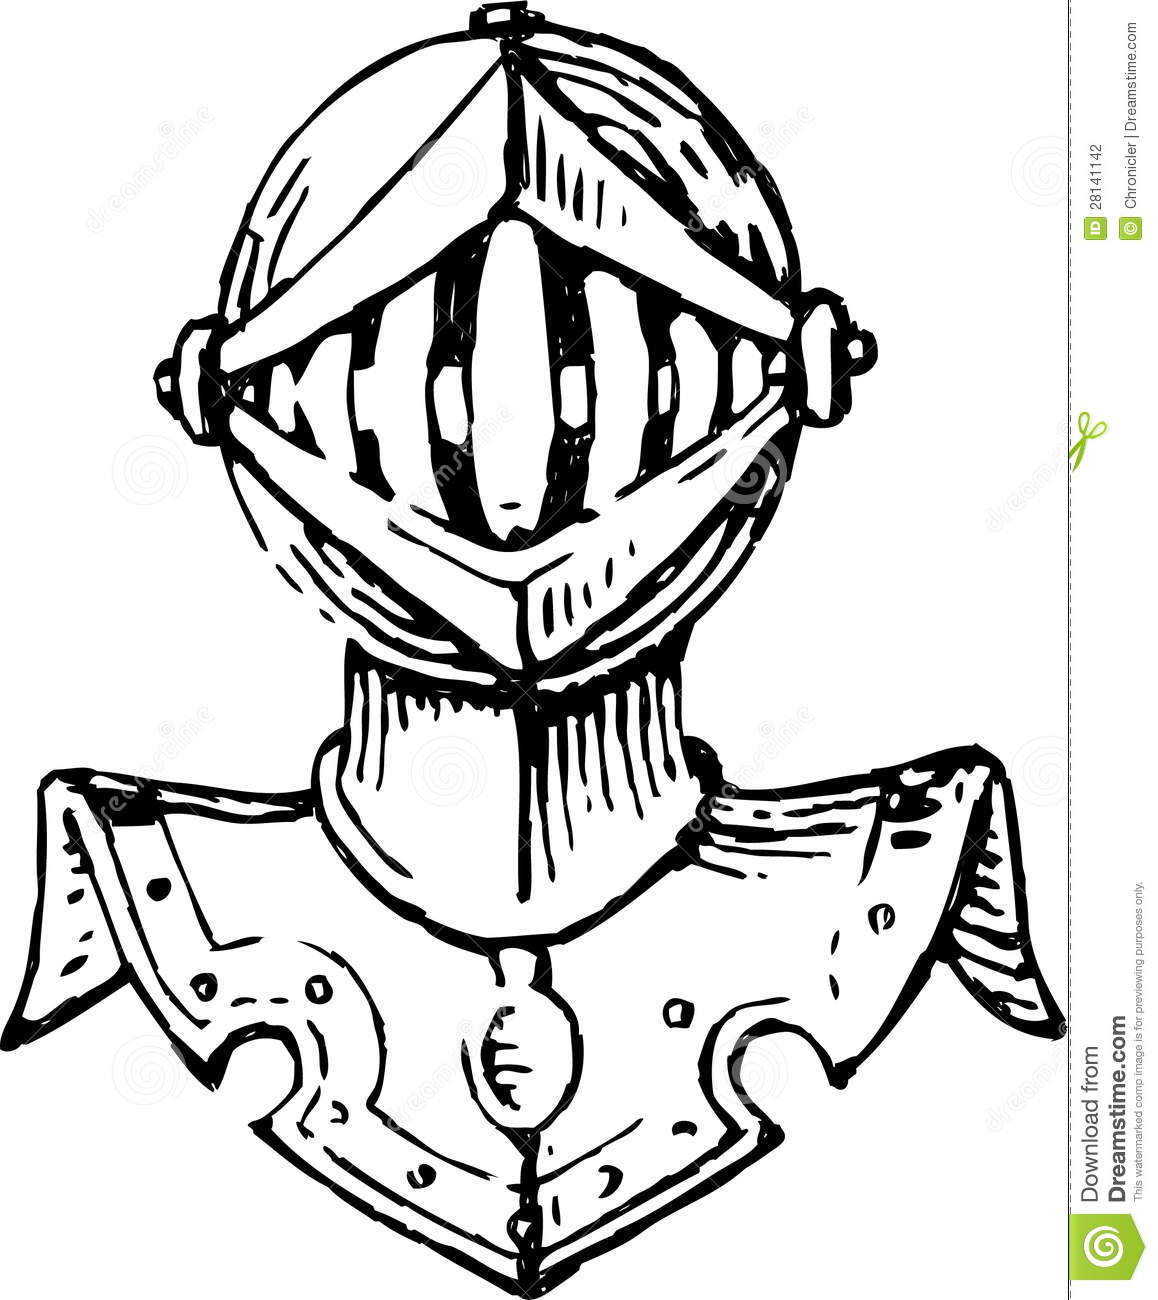 Head Of A Knight In Armor Stock Photography - Image: 28141142